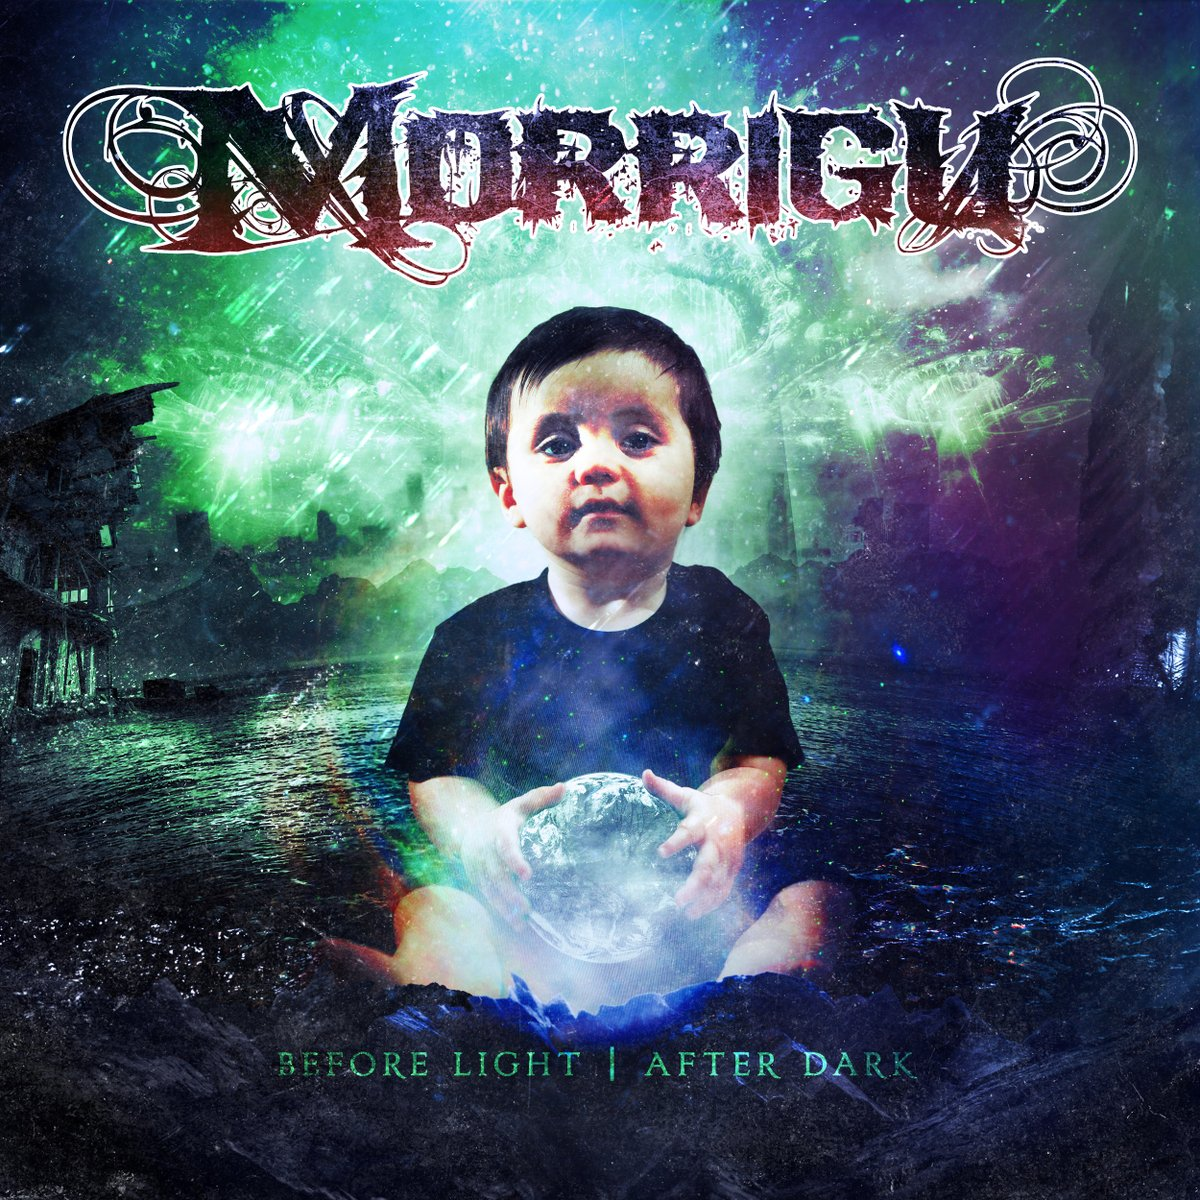 ...exactly five years ago, what do you expect from the new album? #morrigu #newalbum #metalmusic   https://www. youtube.com/watch?v=PSNWzD K7OiU  … <br>http://pic.twitter.com/07GXr6V0Lq